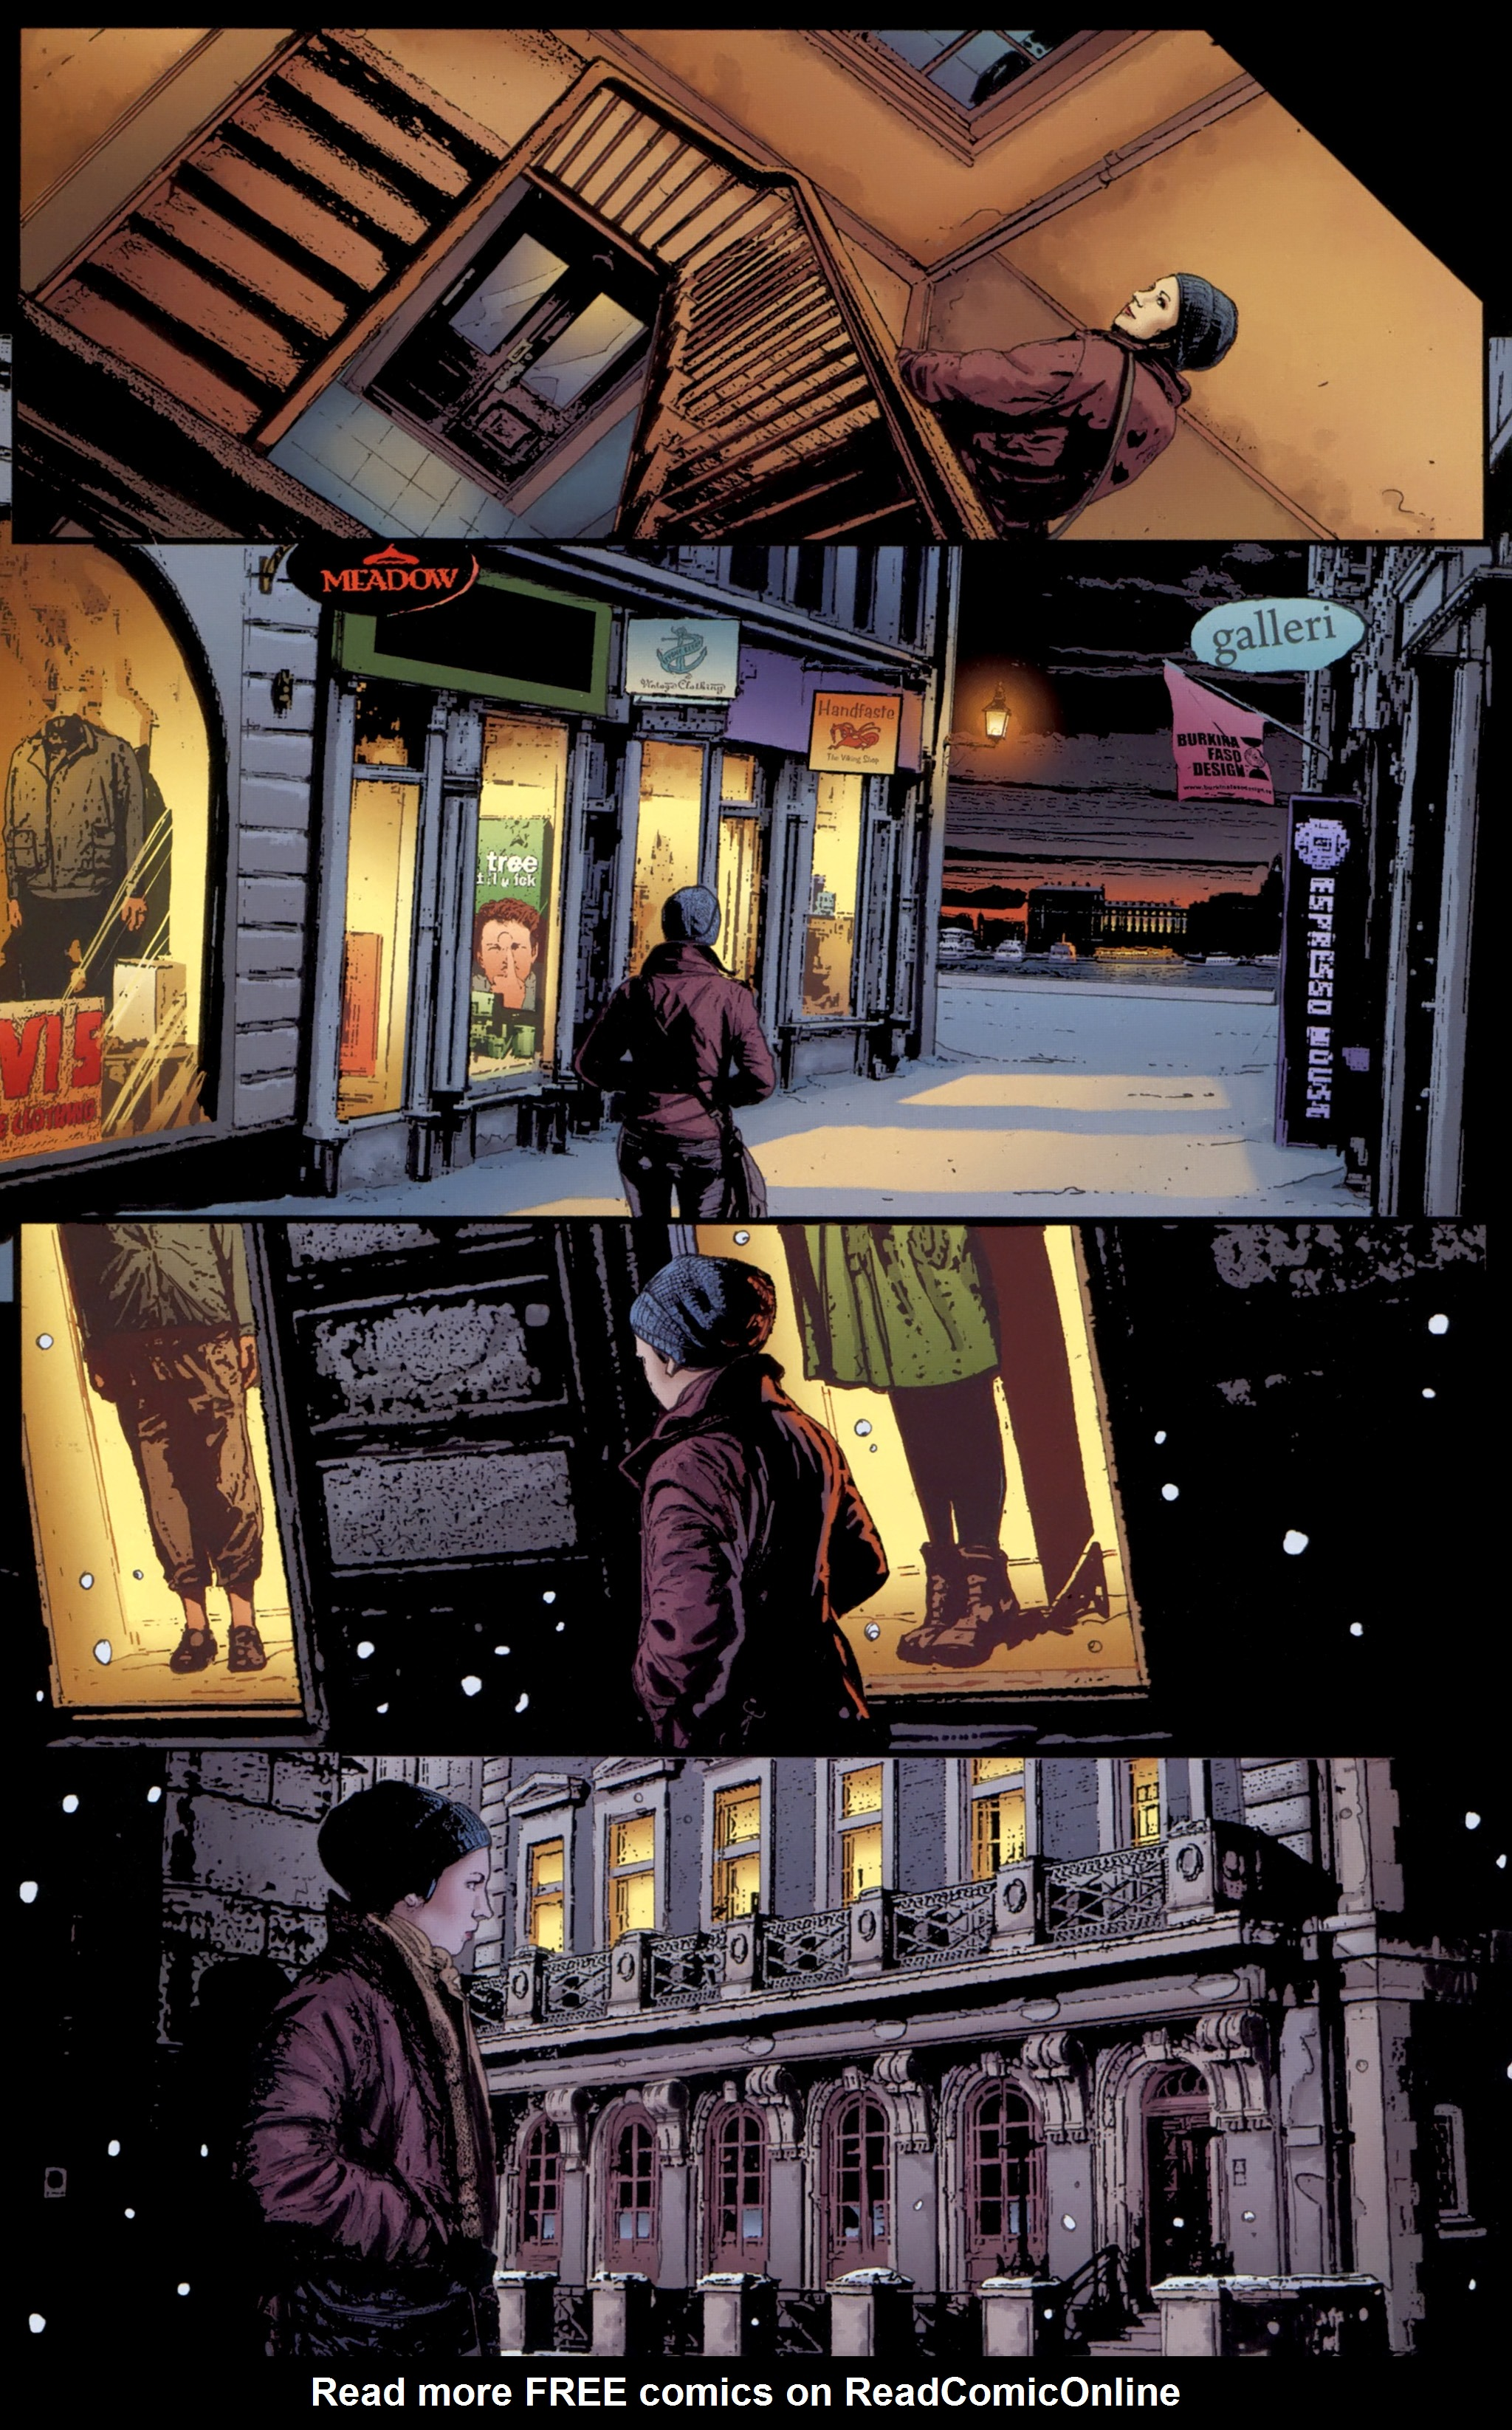 Read online The Girl With the Dragon Tattoo comic -  Issue # TPB 1 - 43